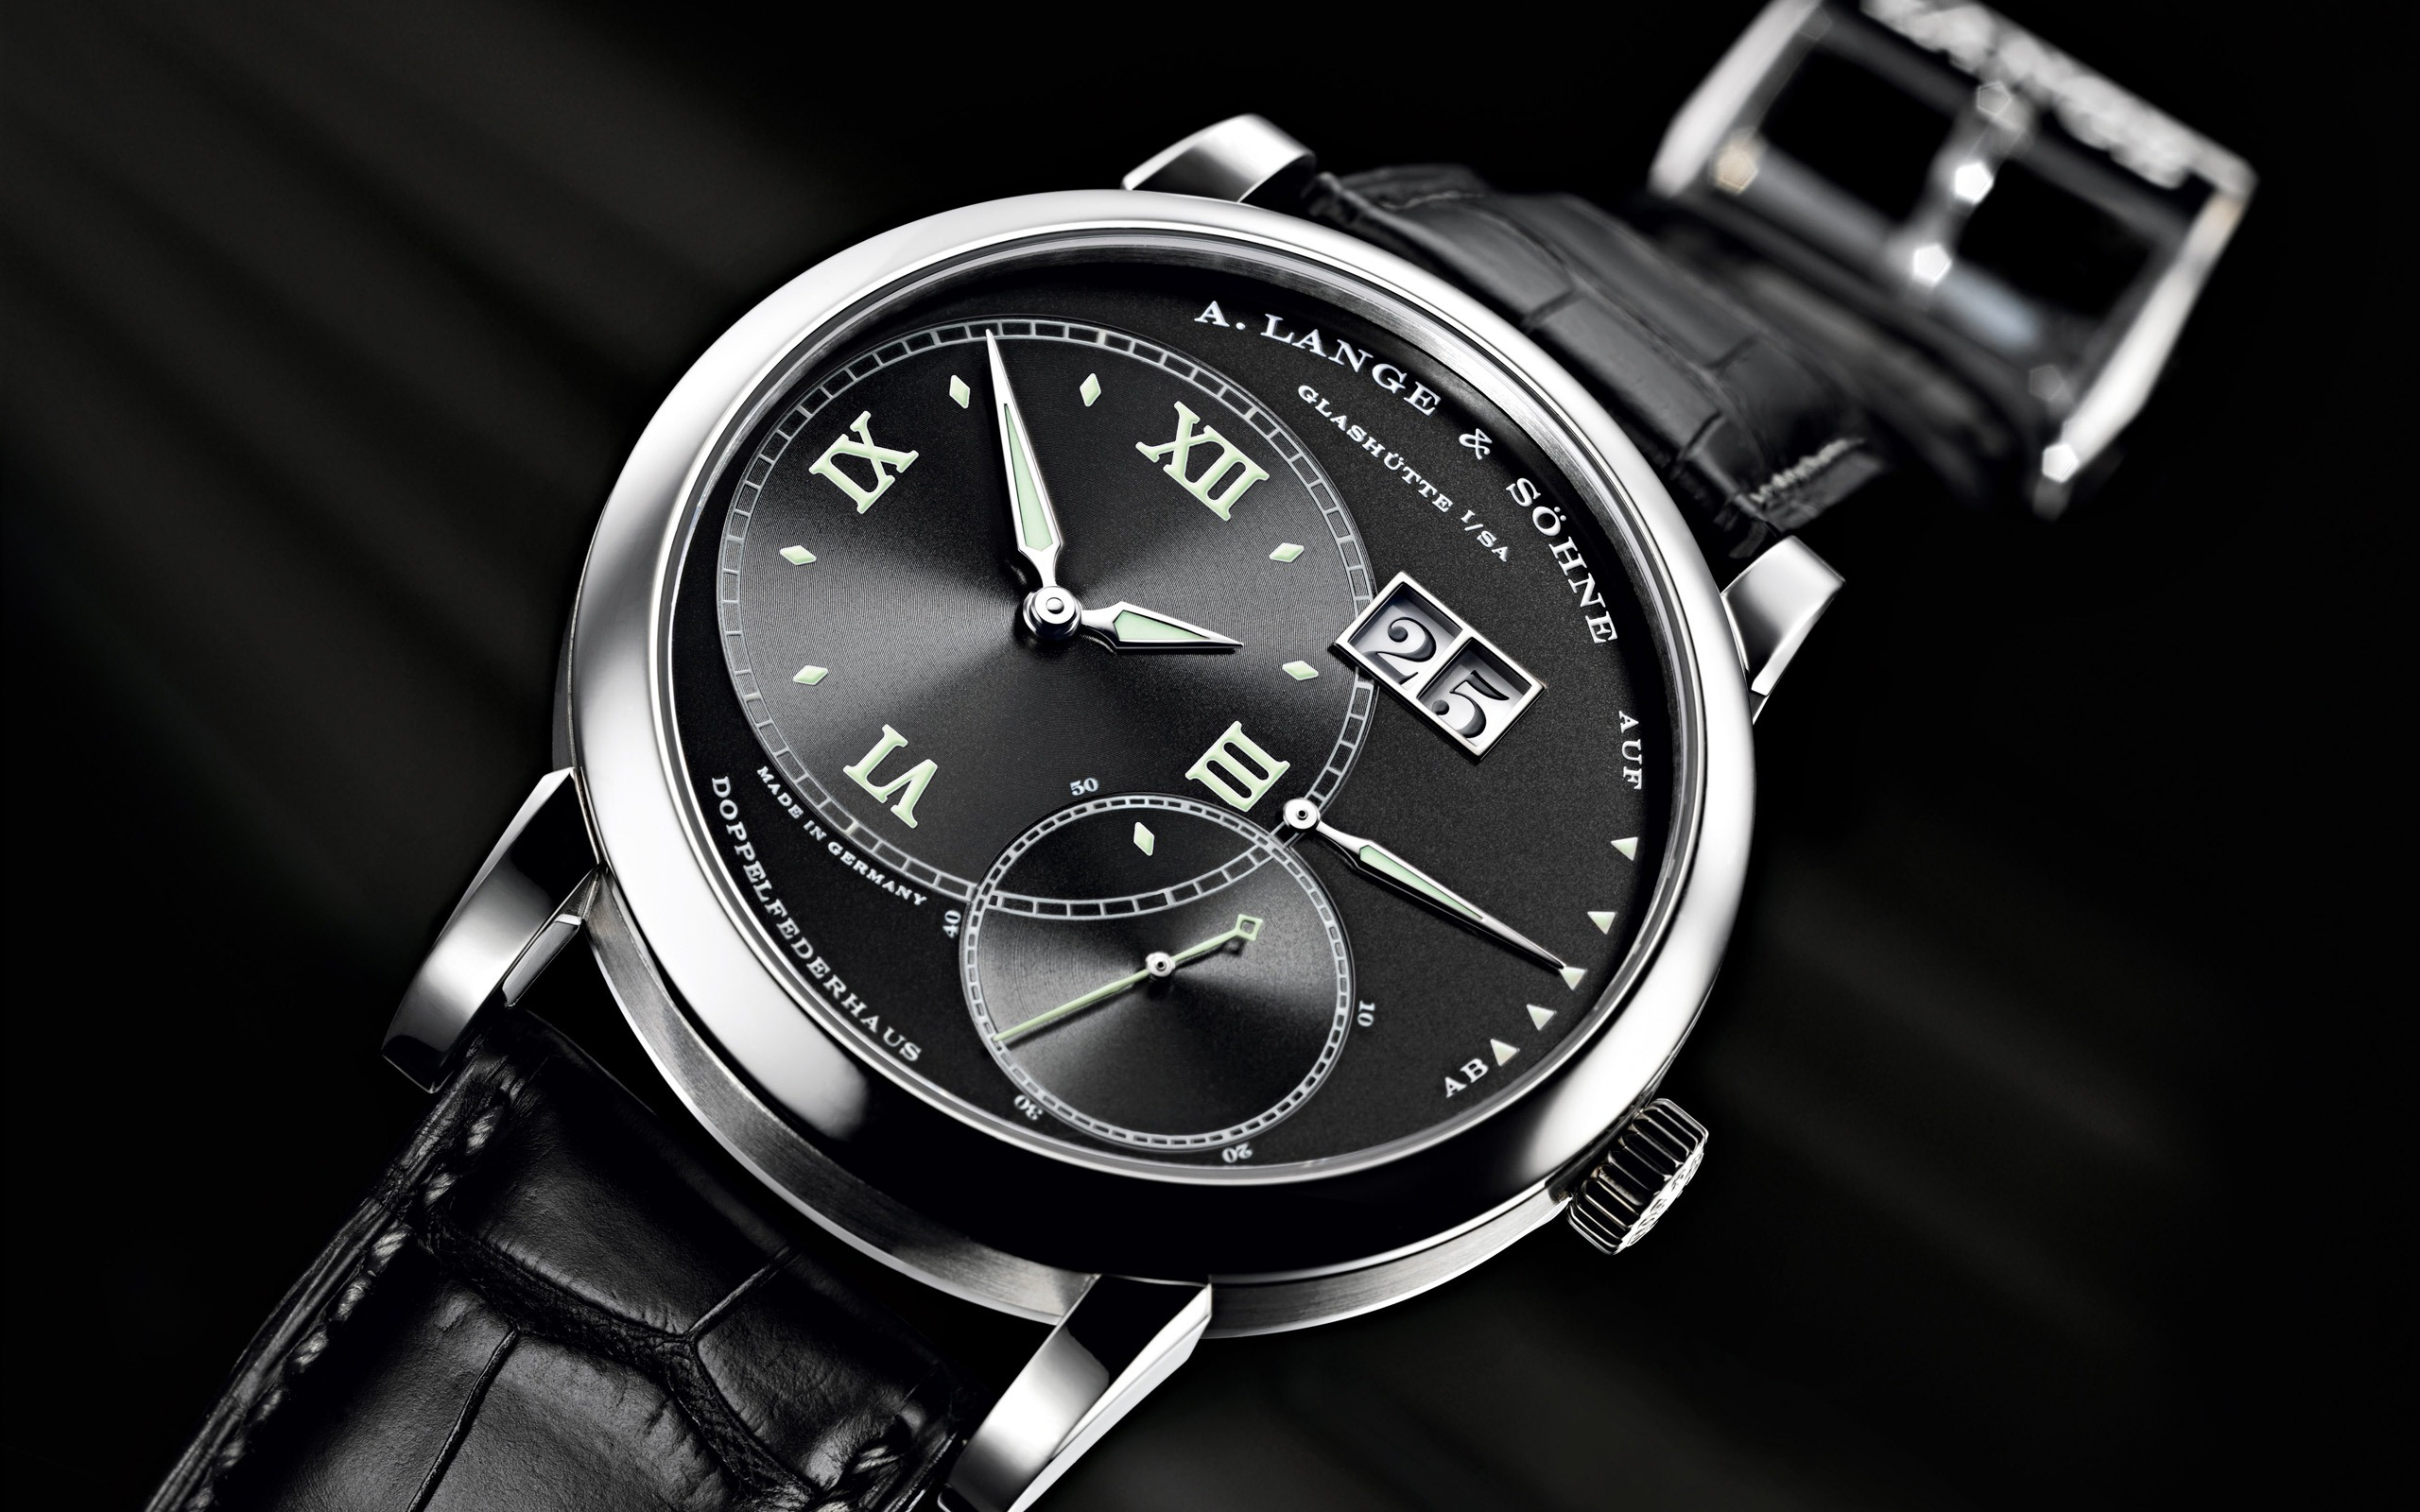 World Famous Watches Wallpapers 1 8 2560x1600 Wallpaper